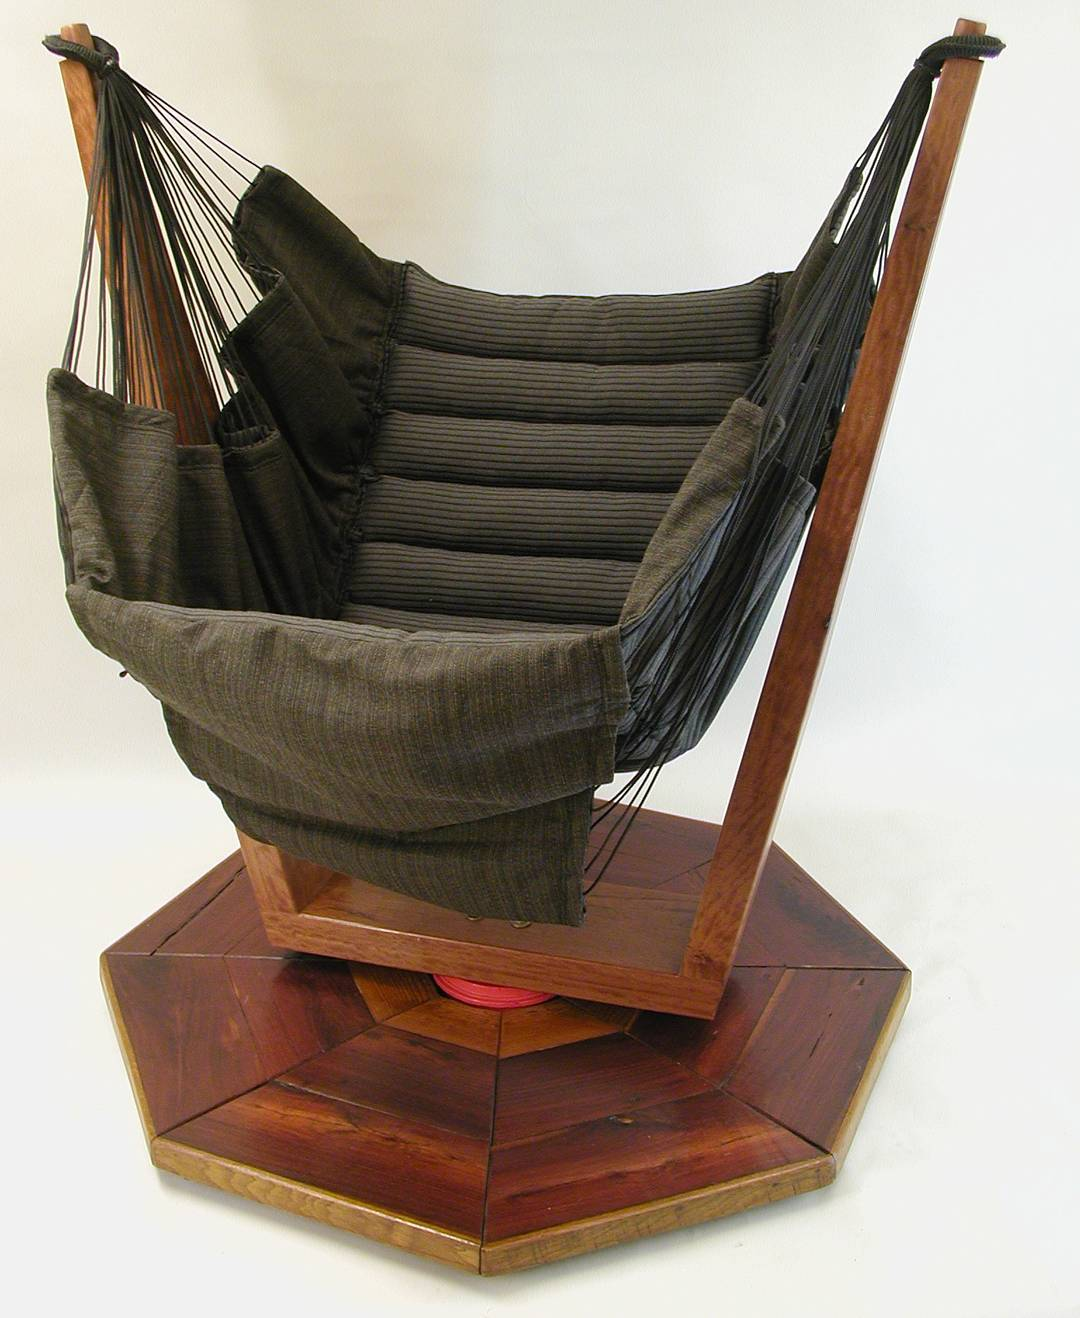 Bohorocker Swing Hammock with Stand